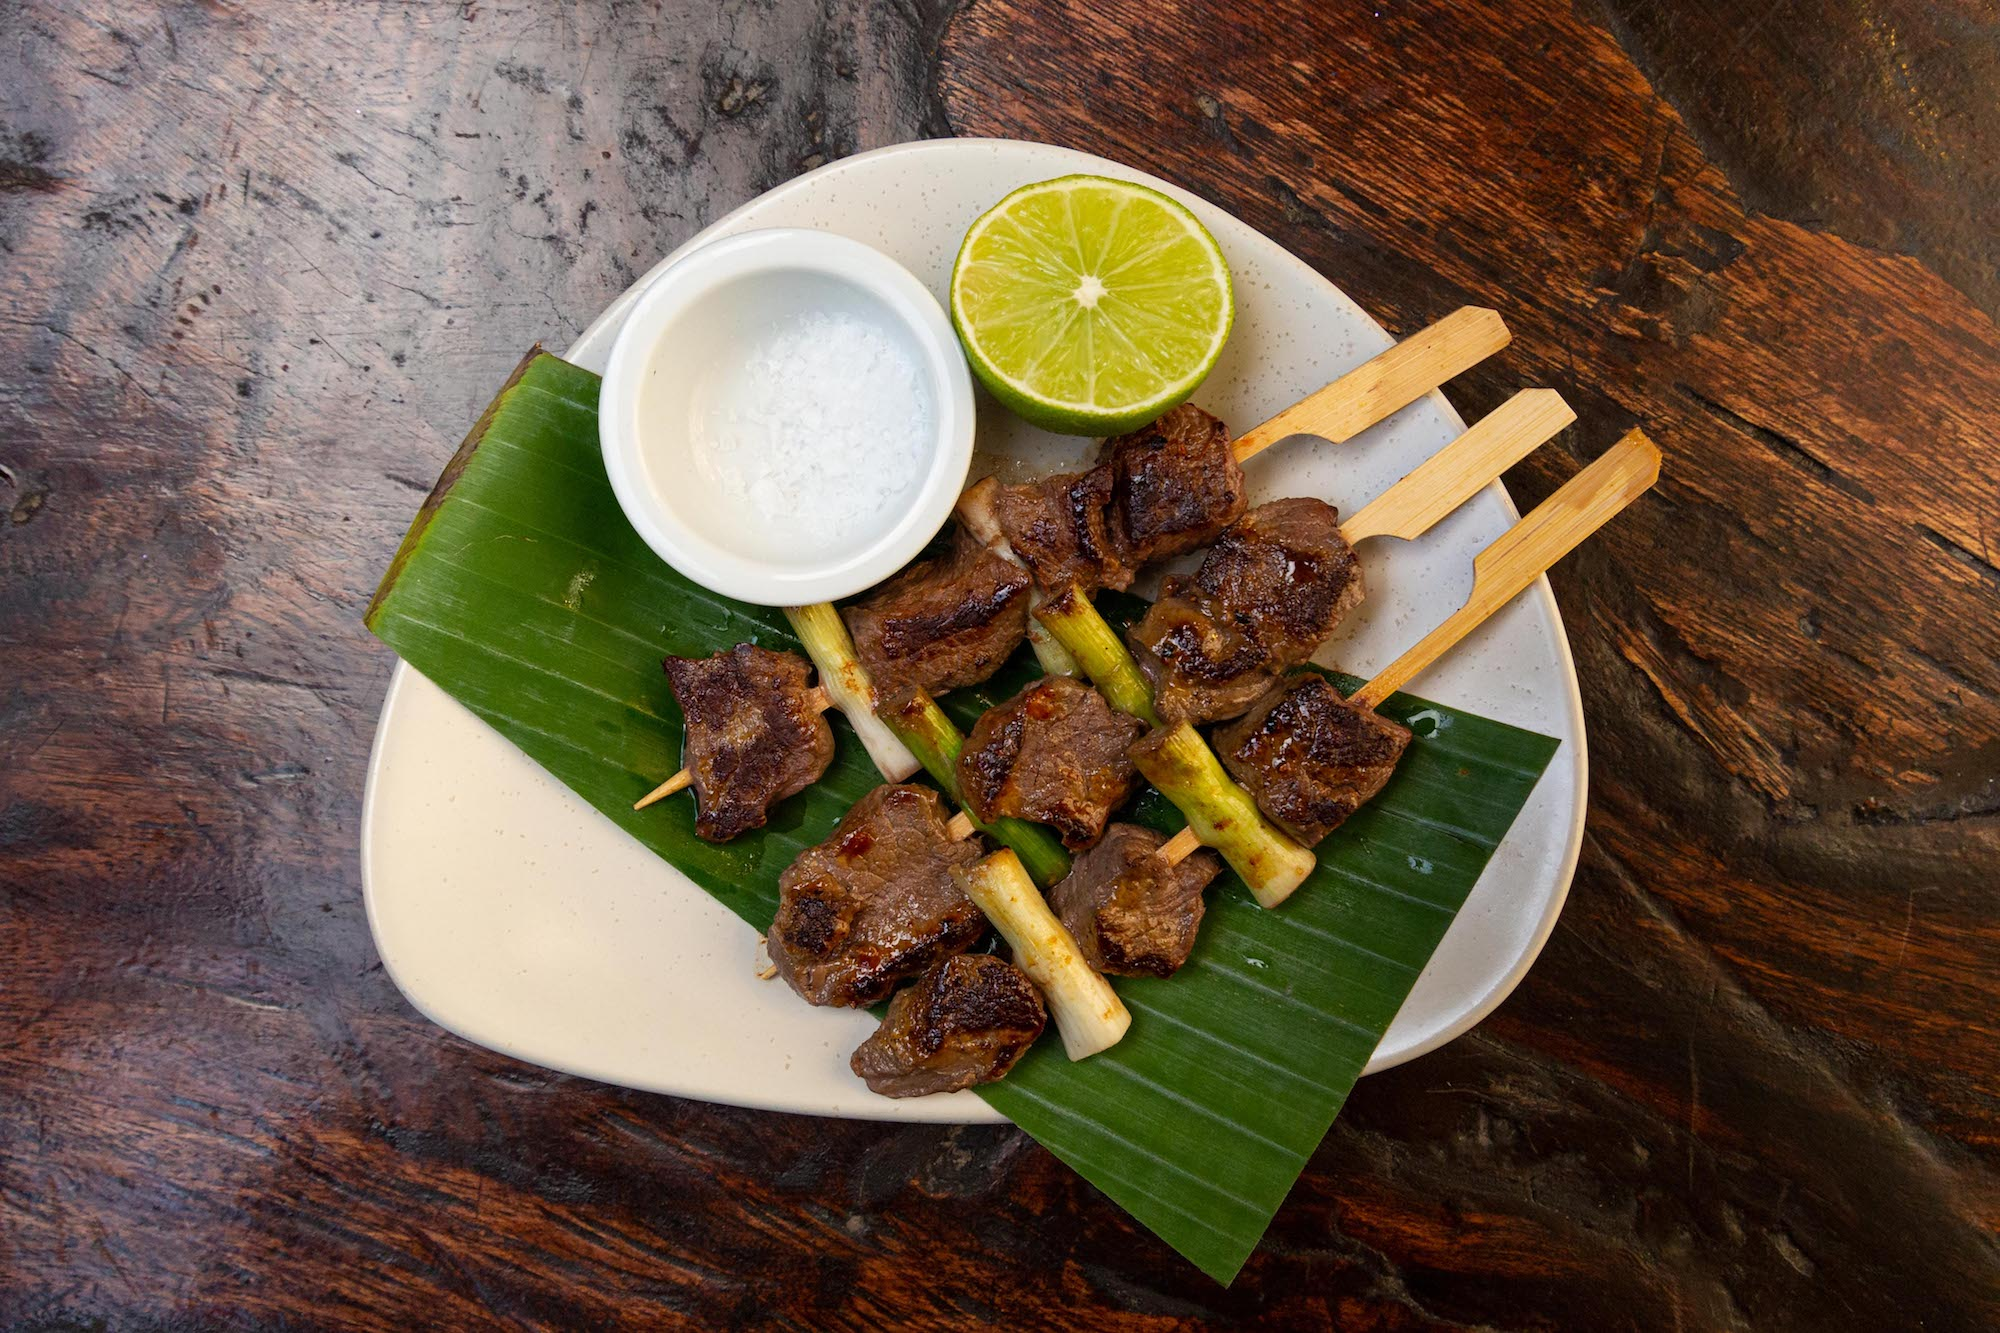 Chargrilled Venison with green onion, lime and rock salt